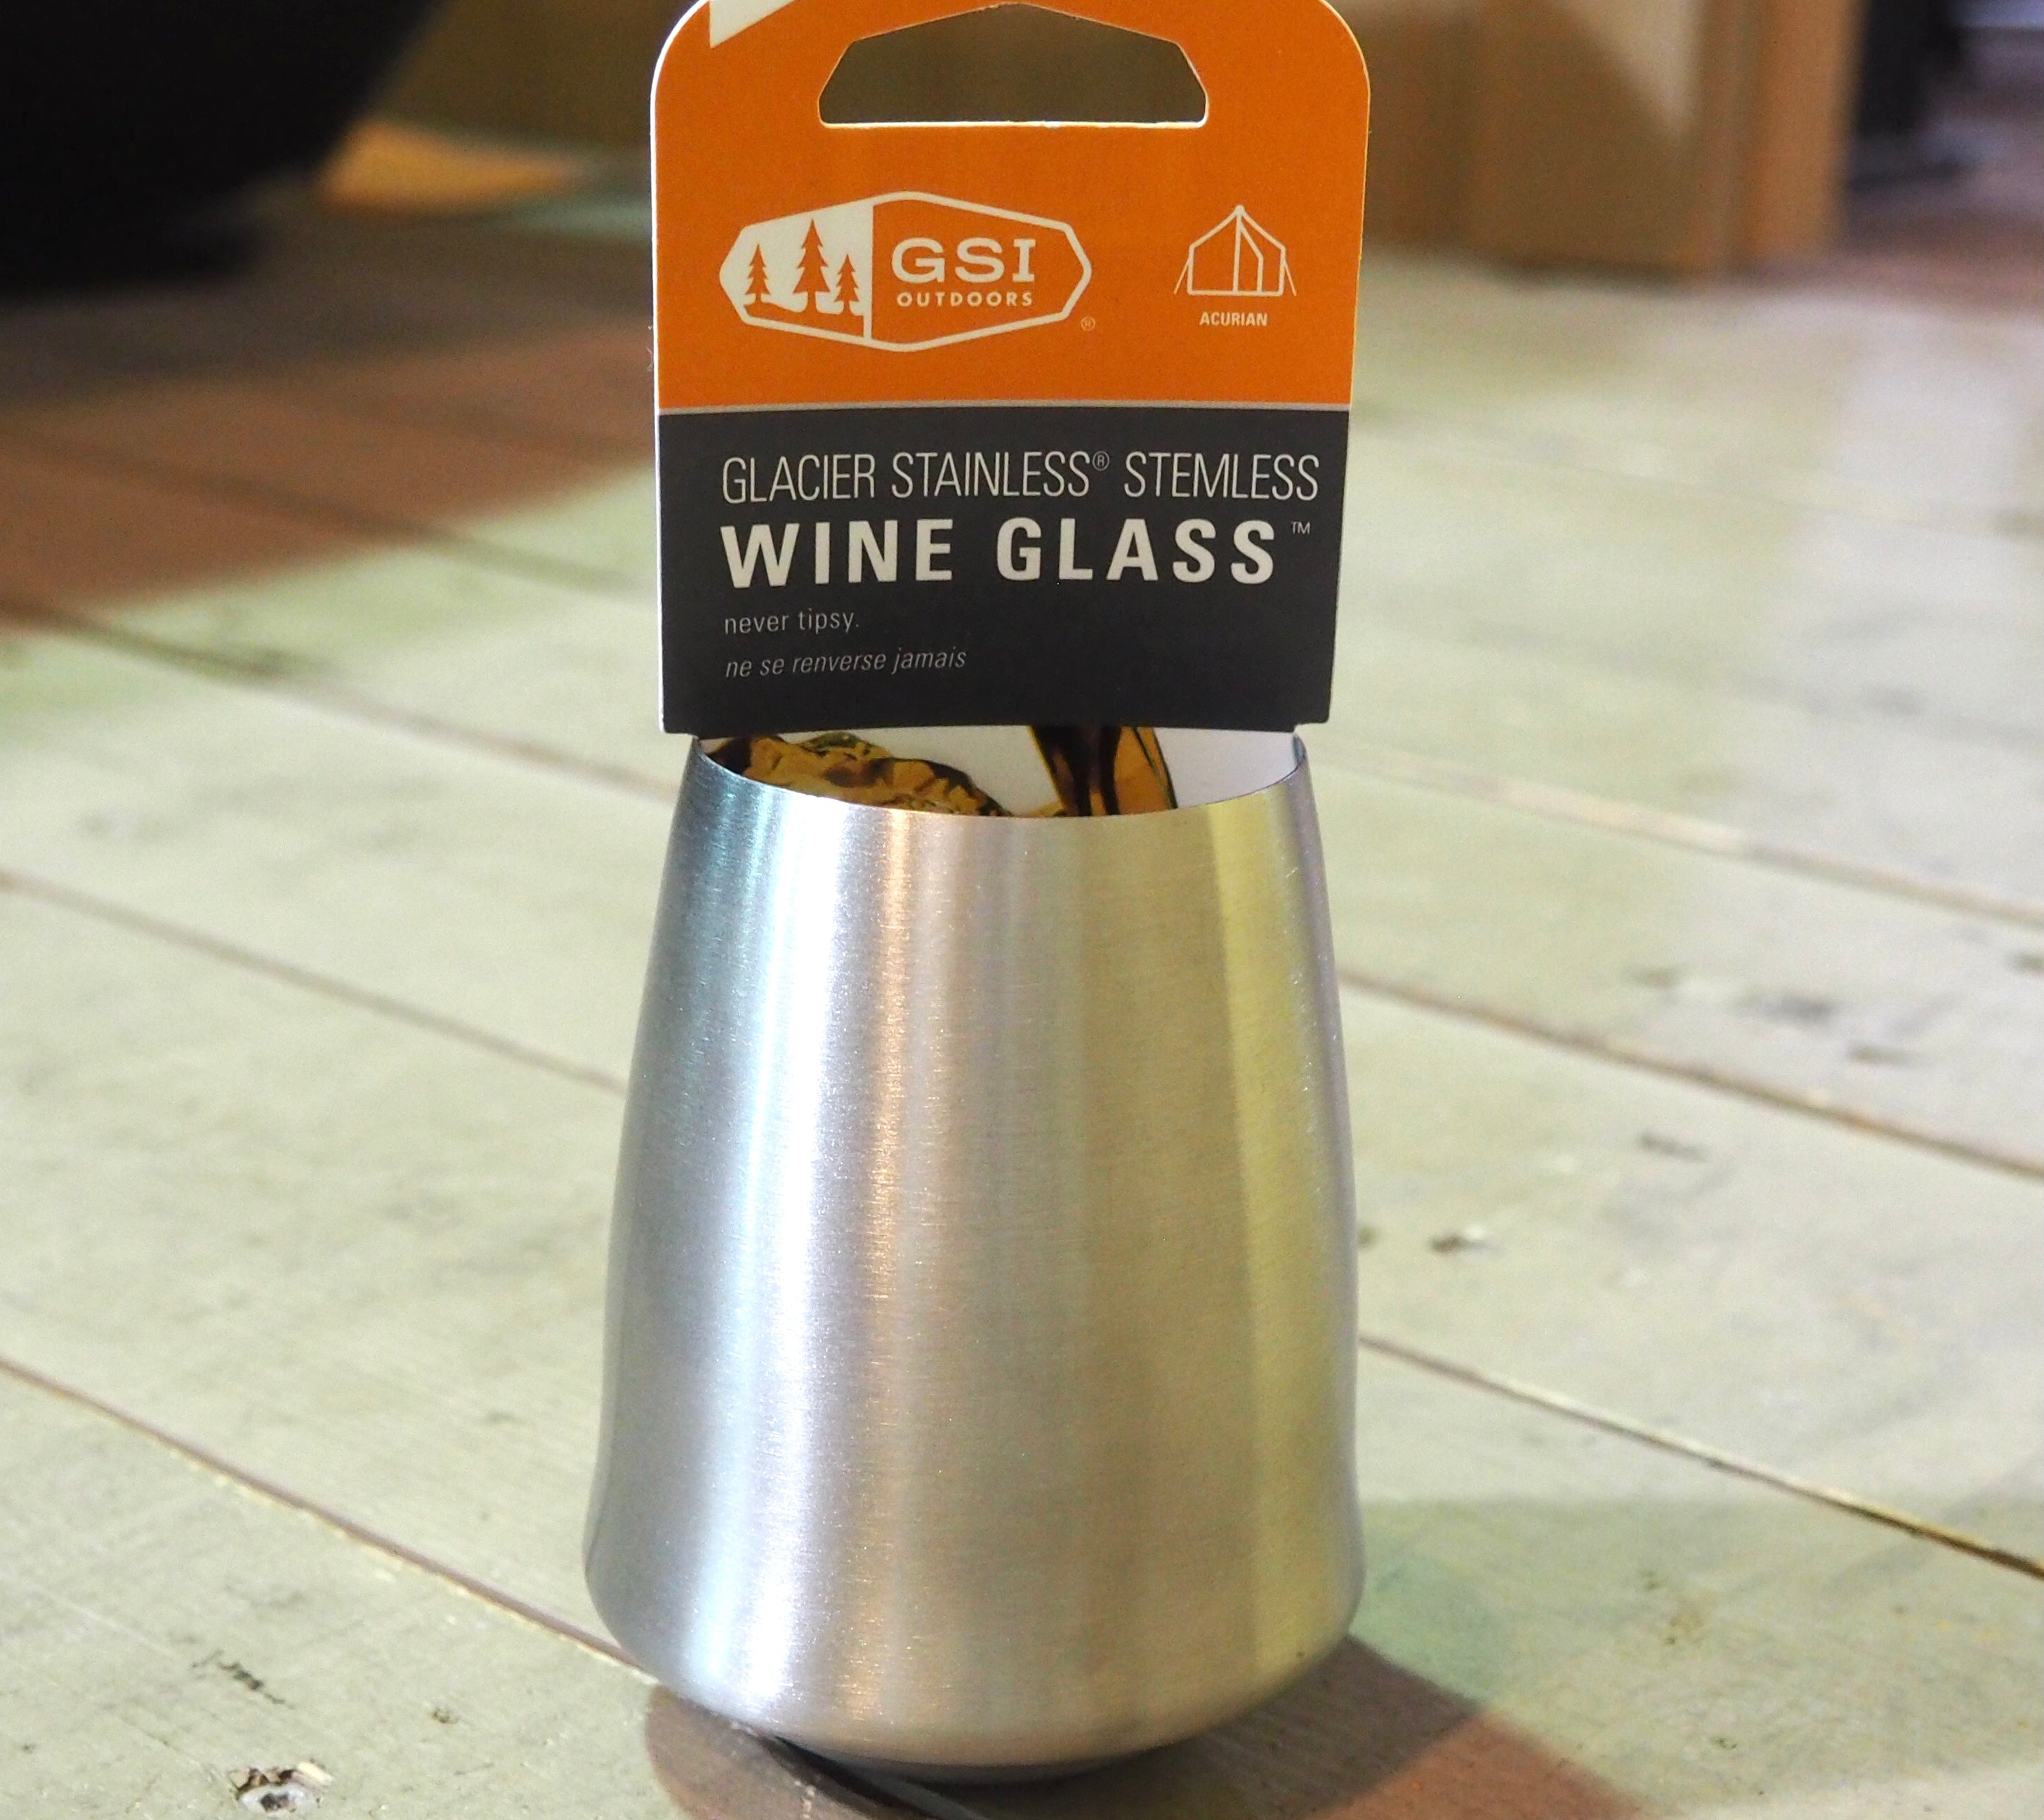 GSI Outdoors Glacier Stainless Steel Stemless Wine Glass